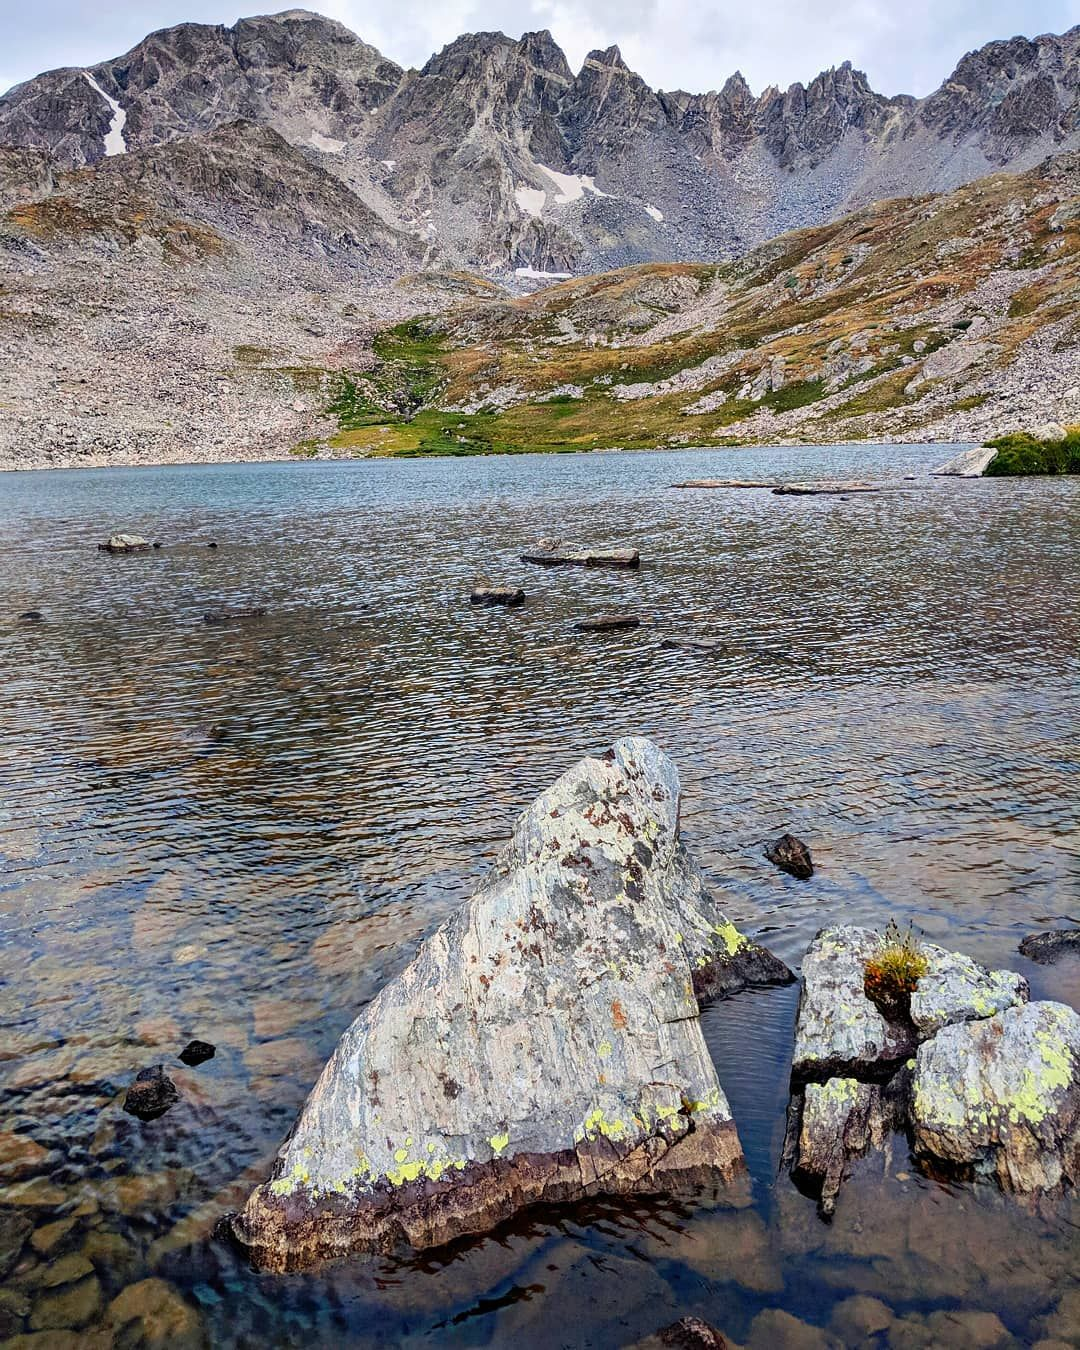 Pin by TruBlu Images on Colorado Hiking and Camping ...